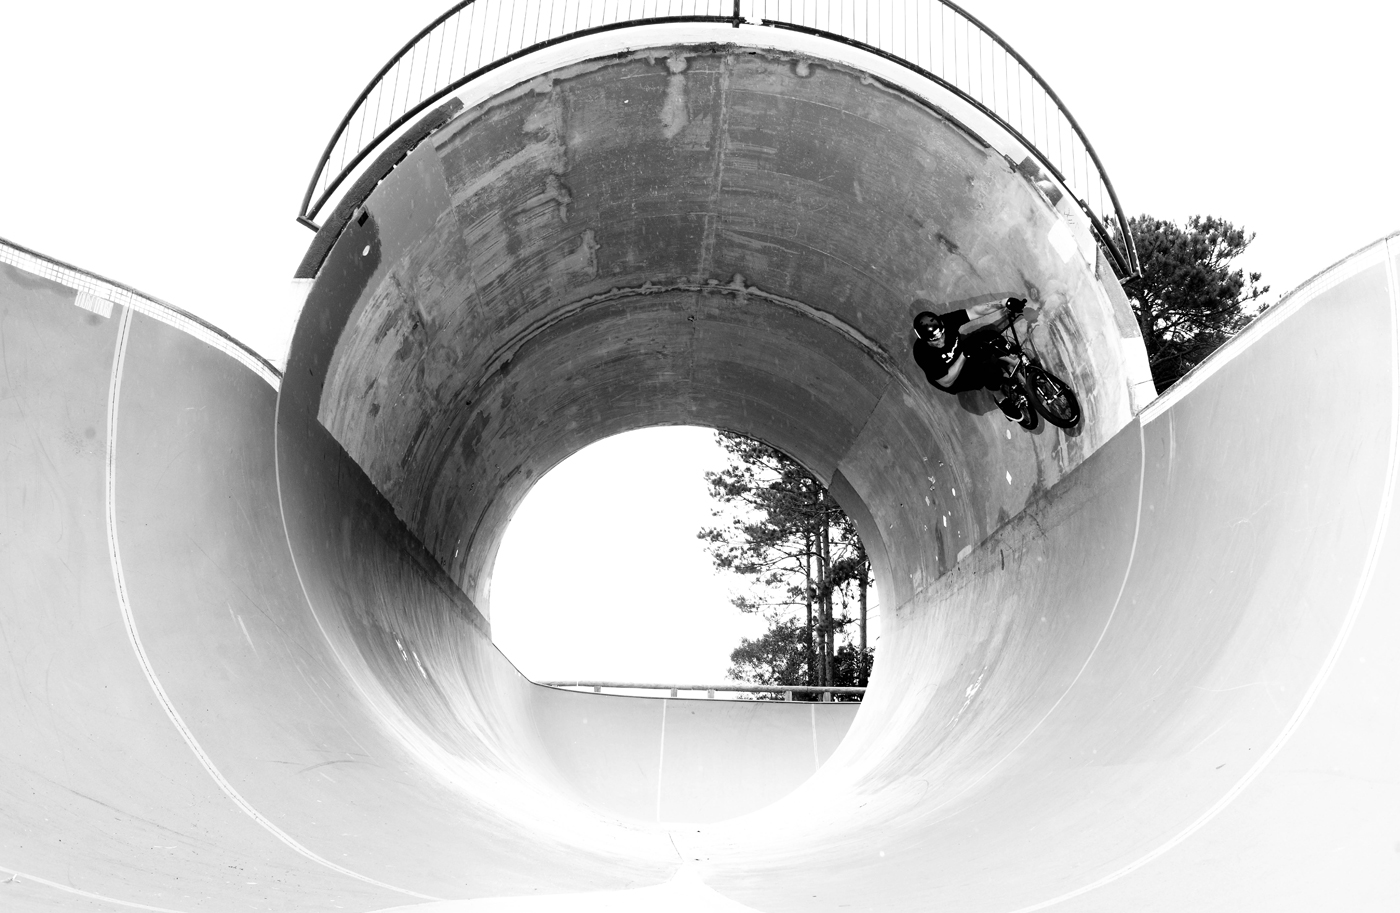 keith-full-pipe-carve-LR